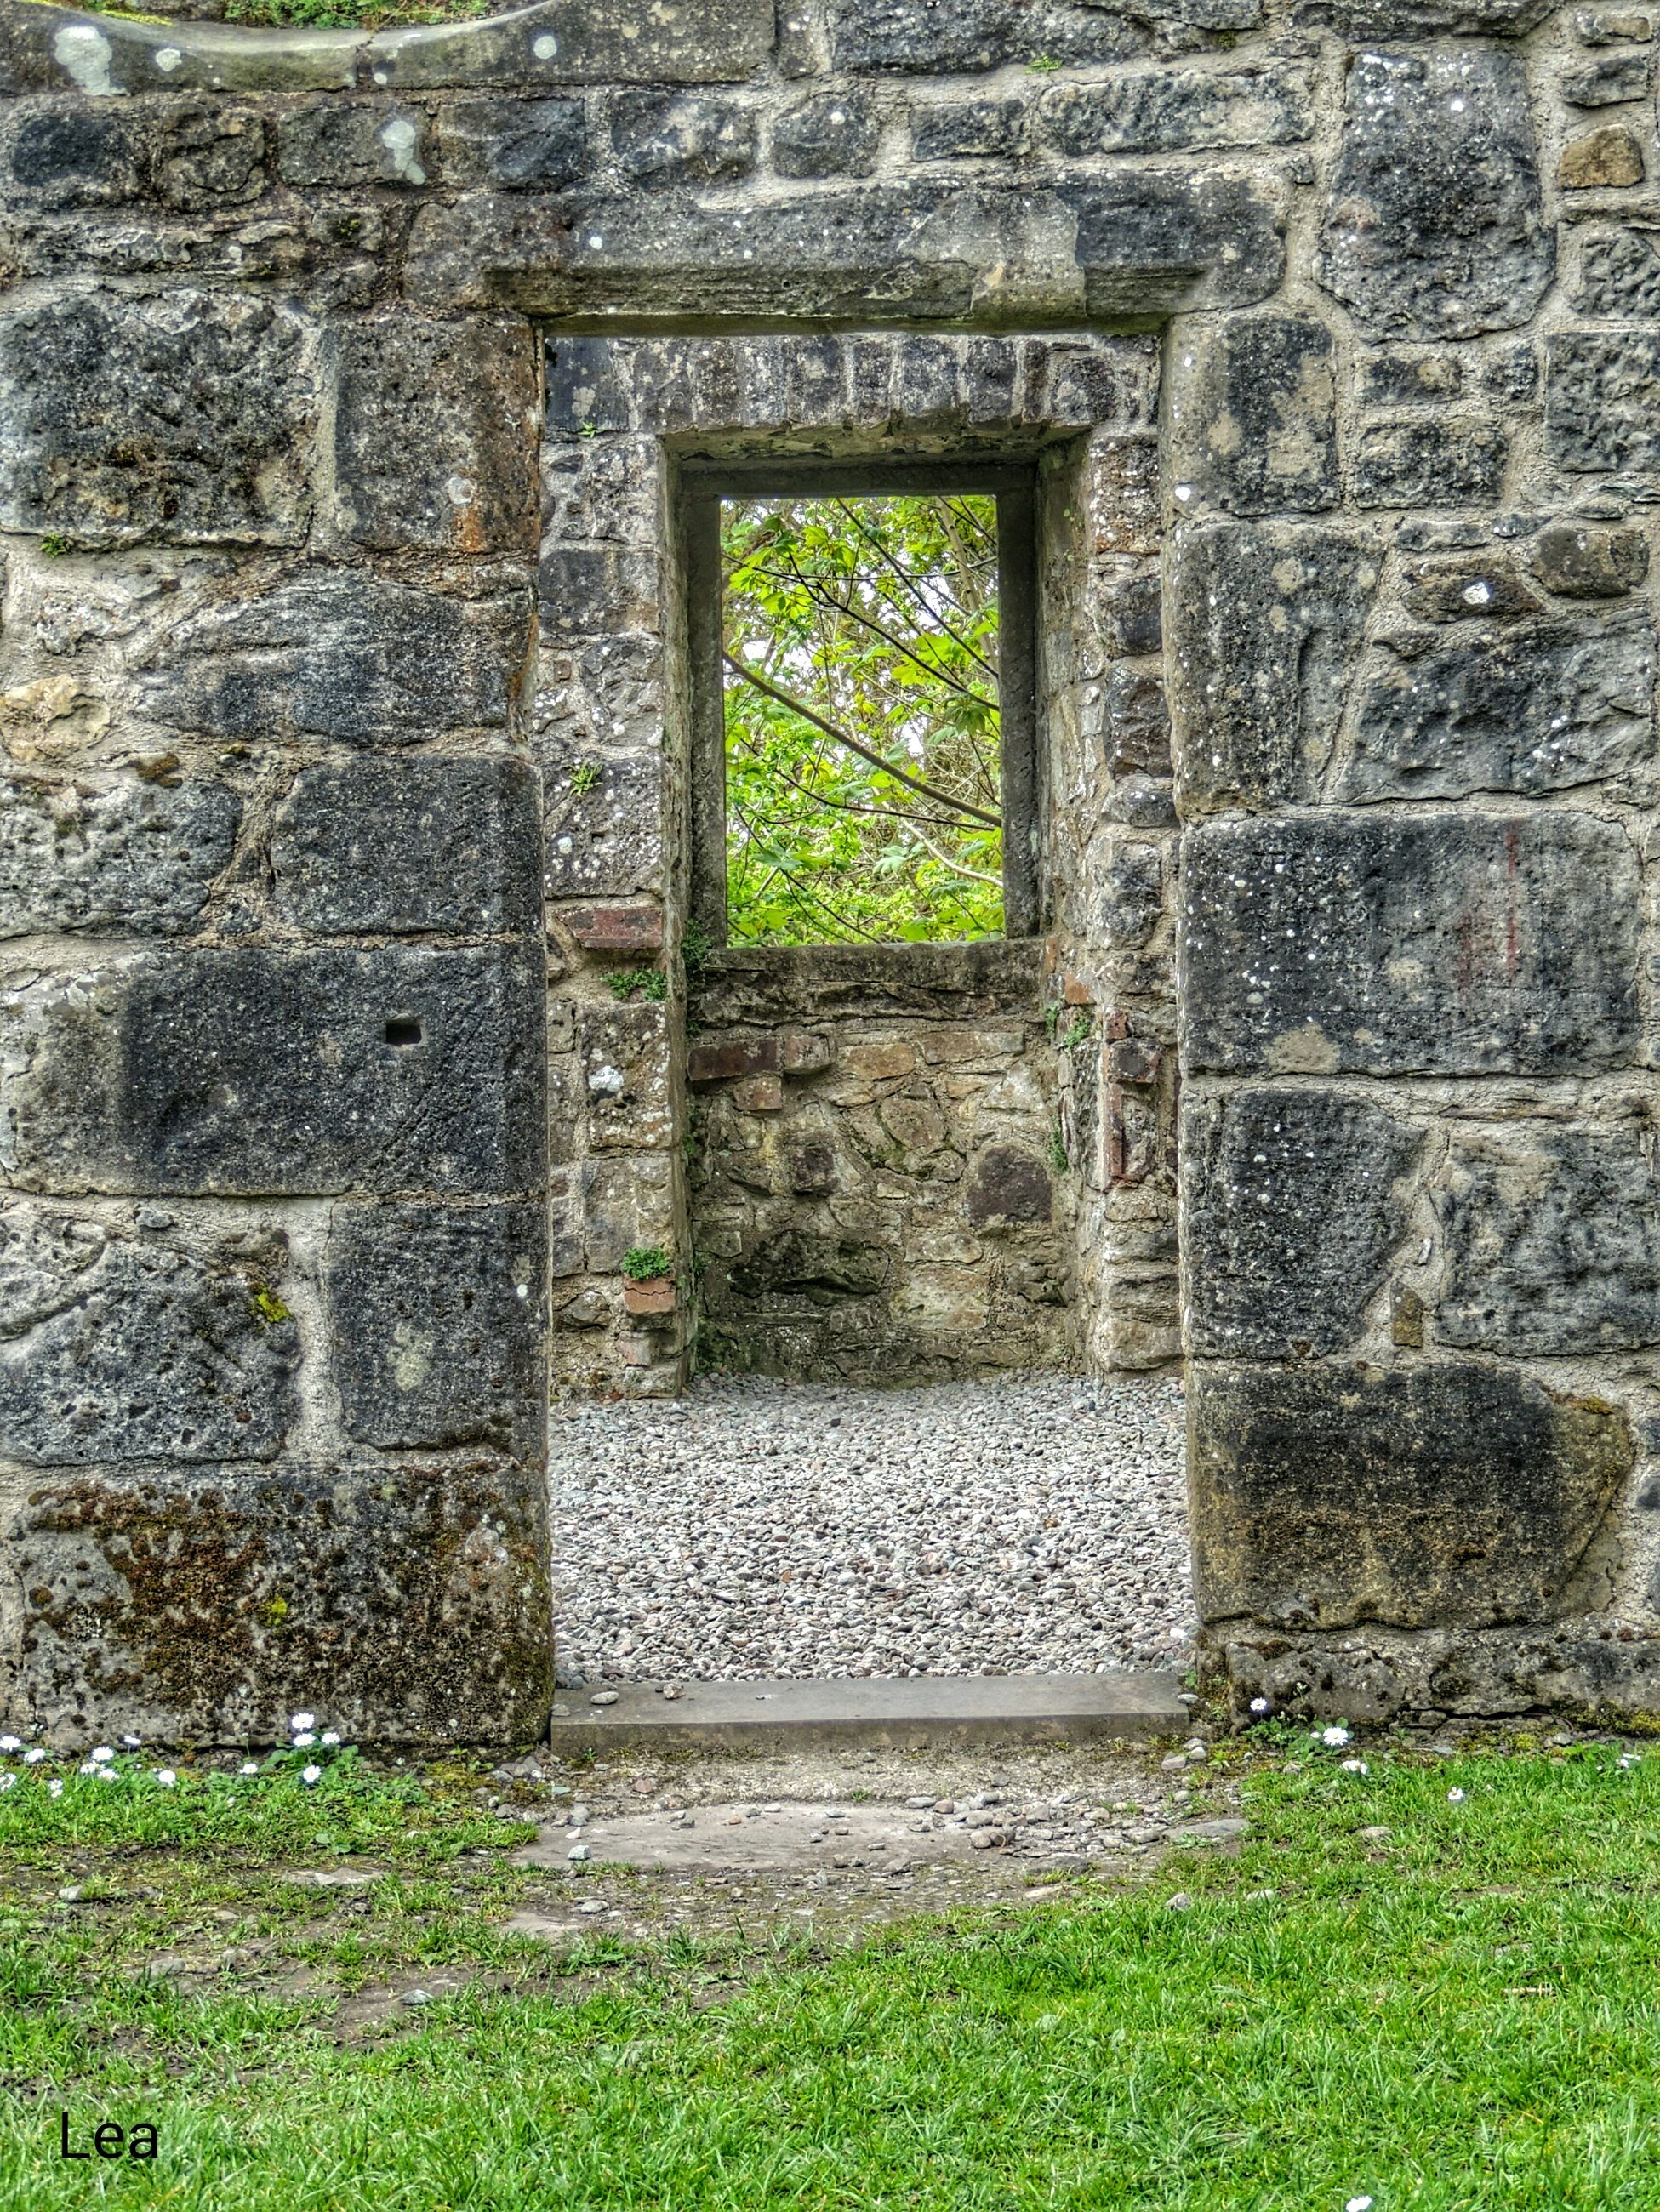 architecture, built structure, window, grass, green color, building exterior, wall - building feature, day, stone wall, plant, no people, history, old, sunlight, outdoors, stone material, growth, wall, pattern, brick wall